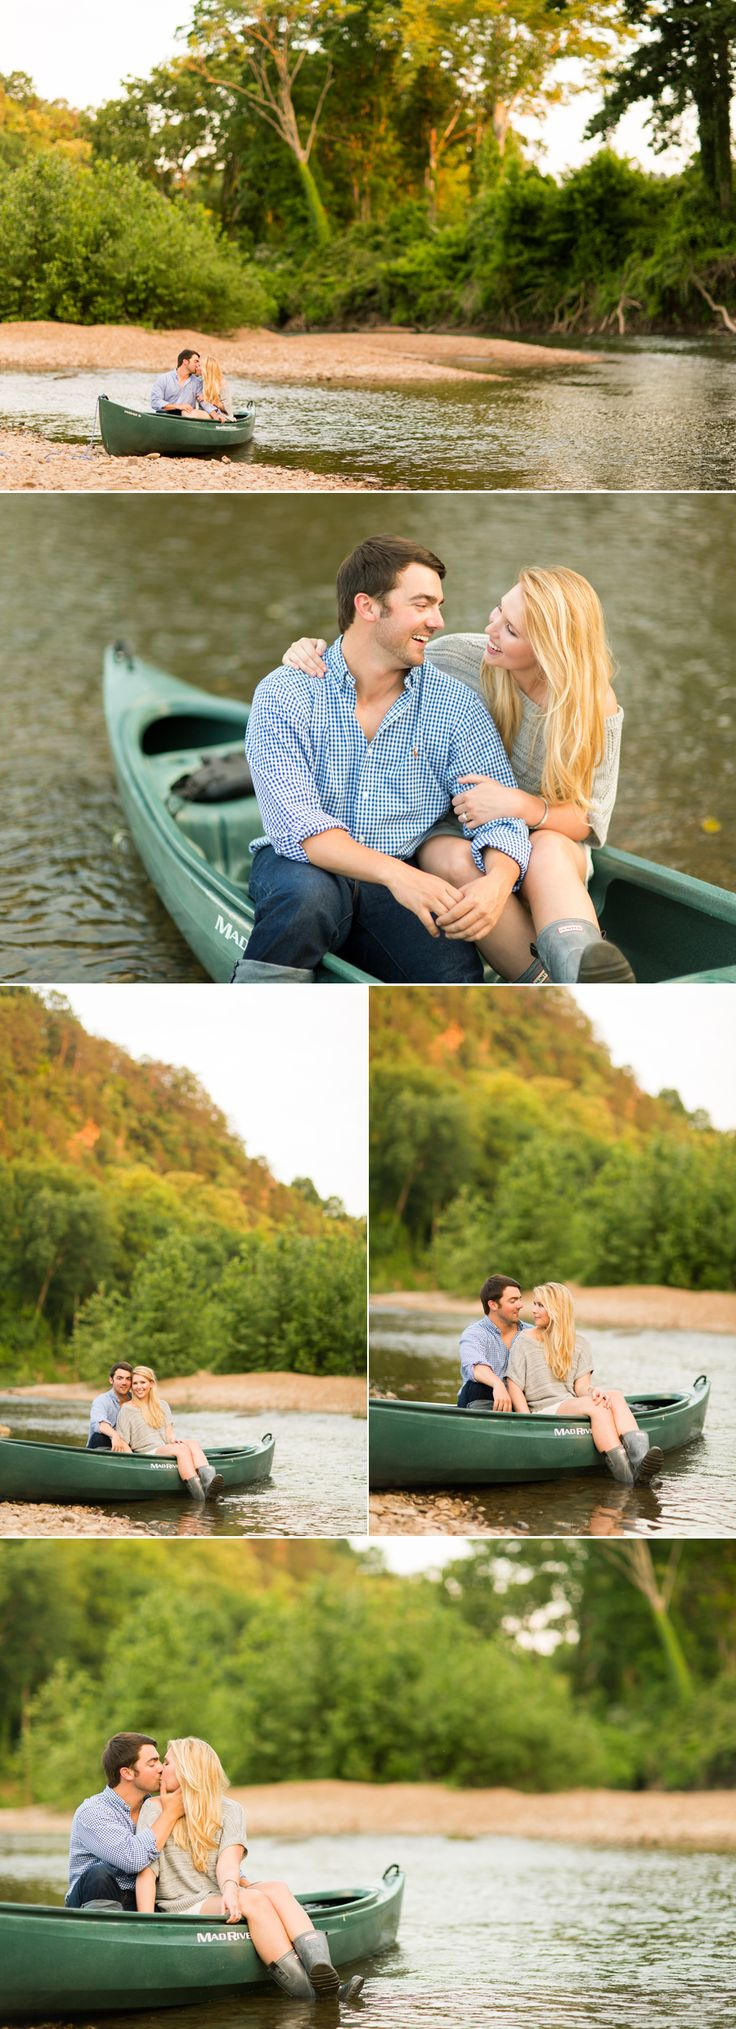 Grant + Rachel | Nashville Engagement Photography |